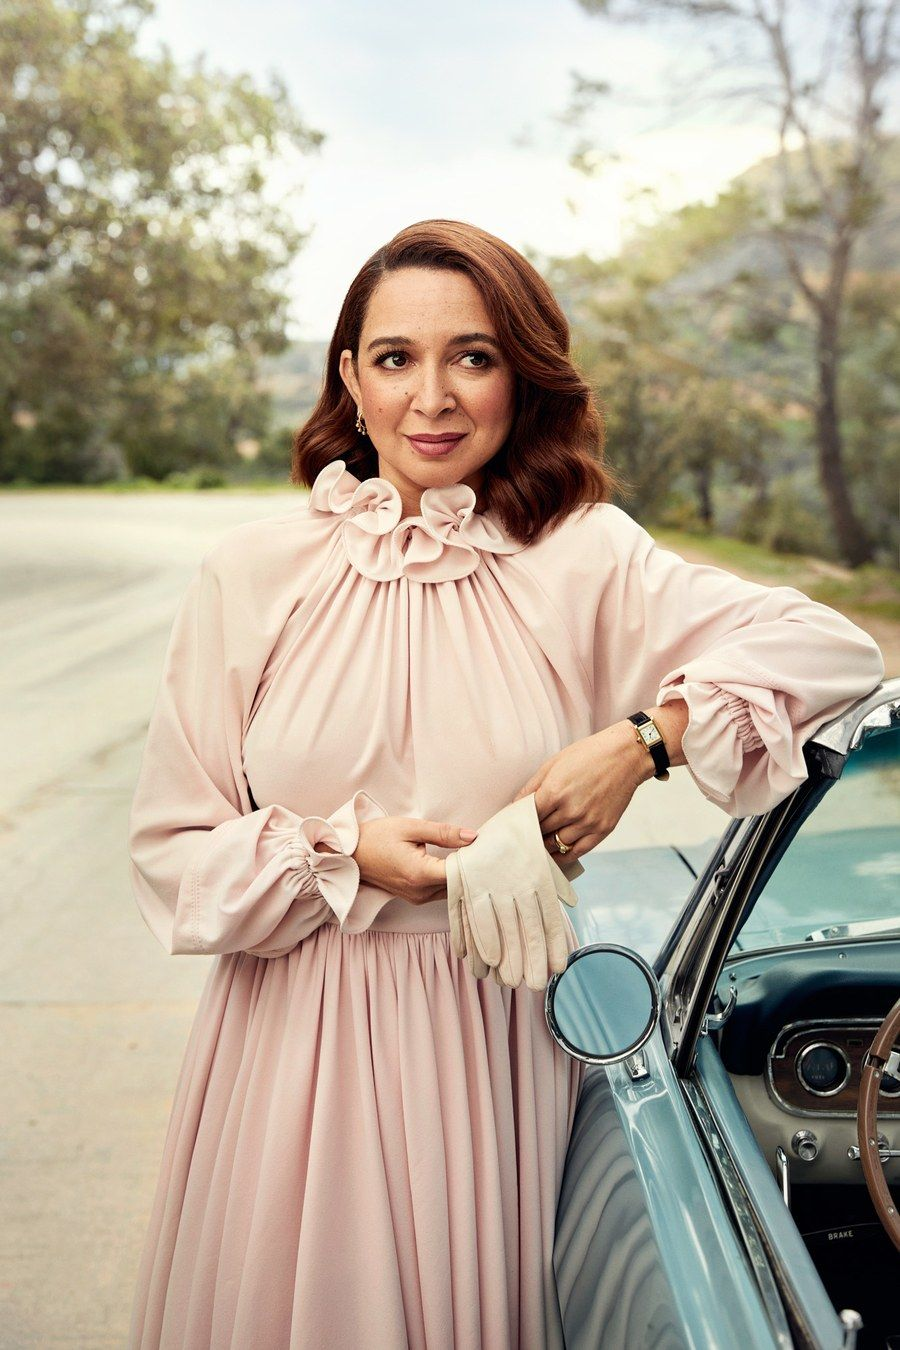 Funny Or Bust Amy Poehler And Maya Rudolph Take Vanity Fair On